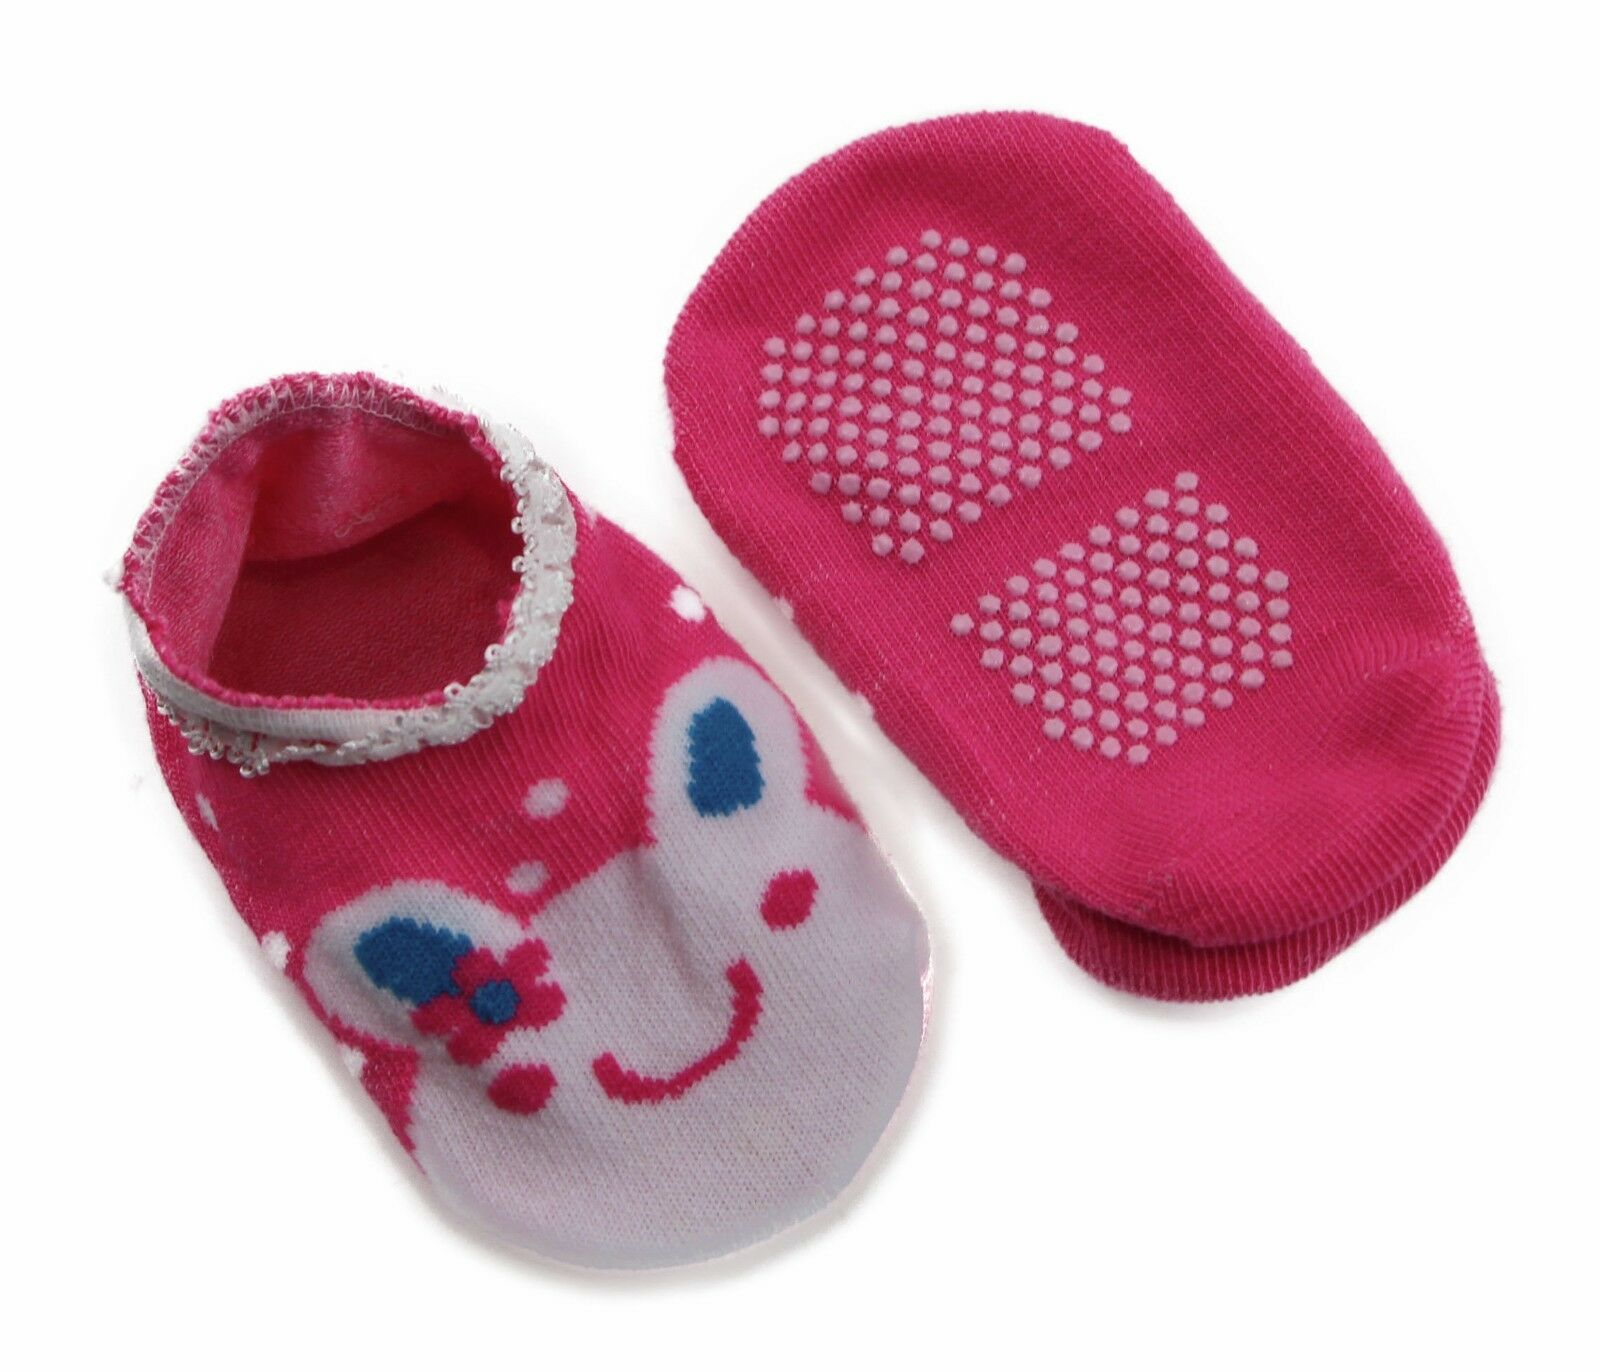 thumbnail 37 - Baby Footlets Kids Toddler Cotton Socks Anti Slip Grip Boys Girls 6-18 Months